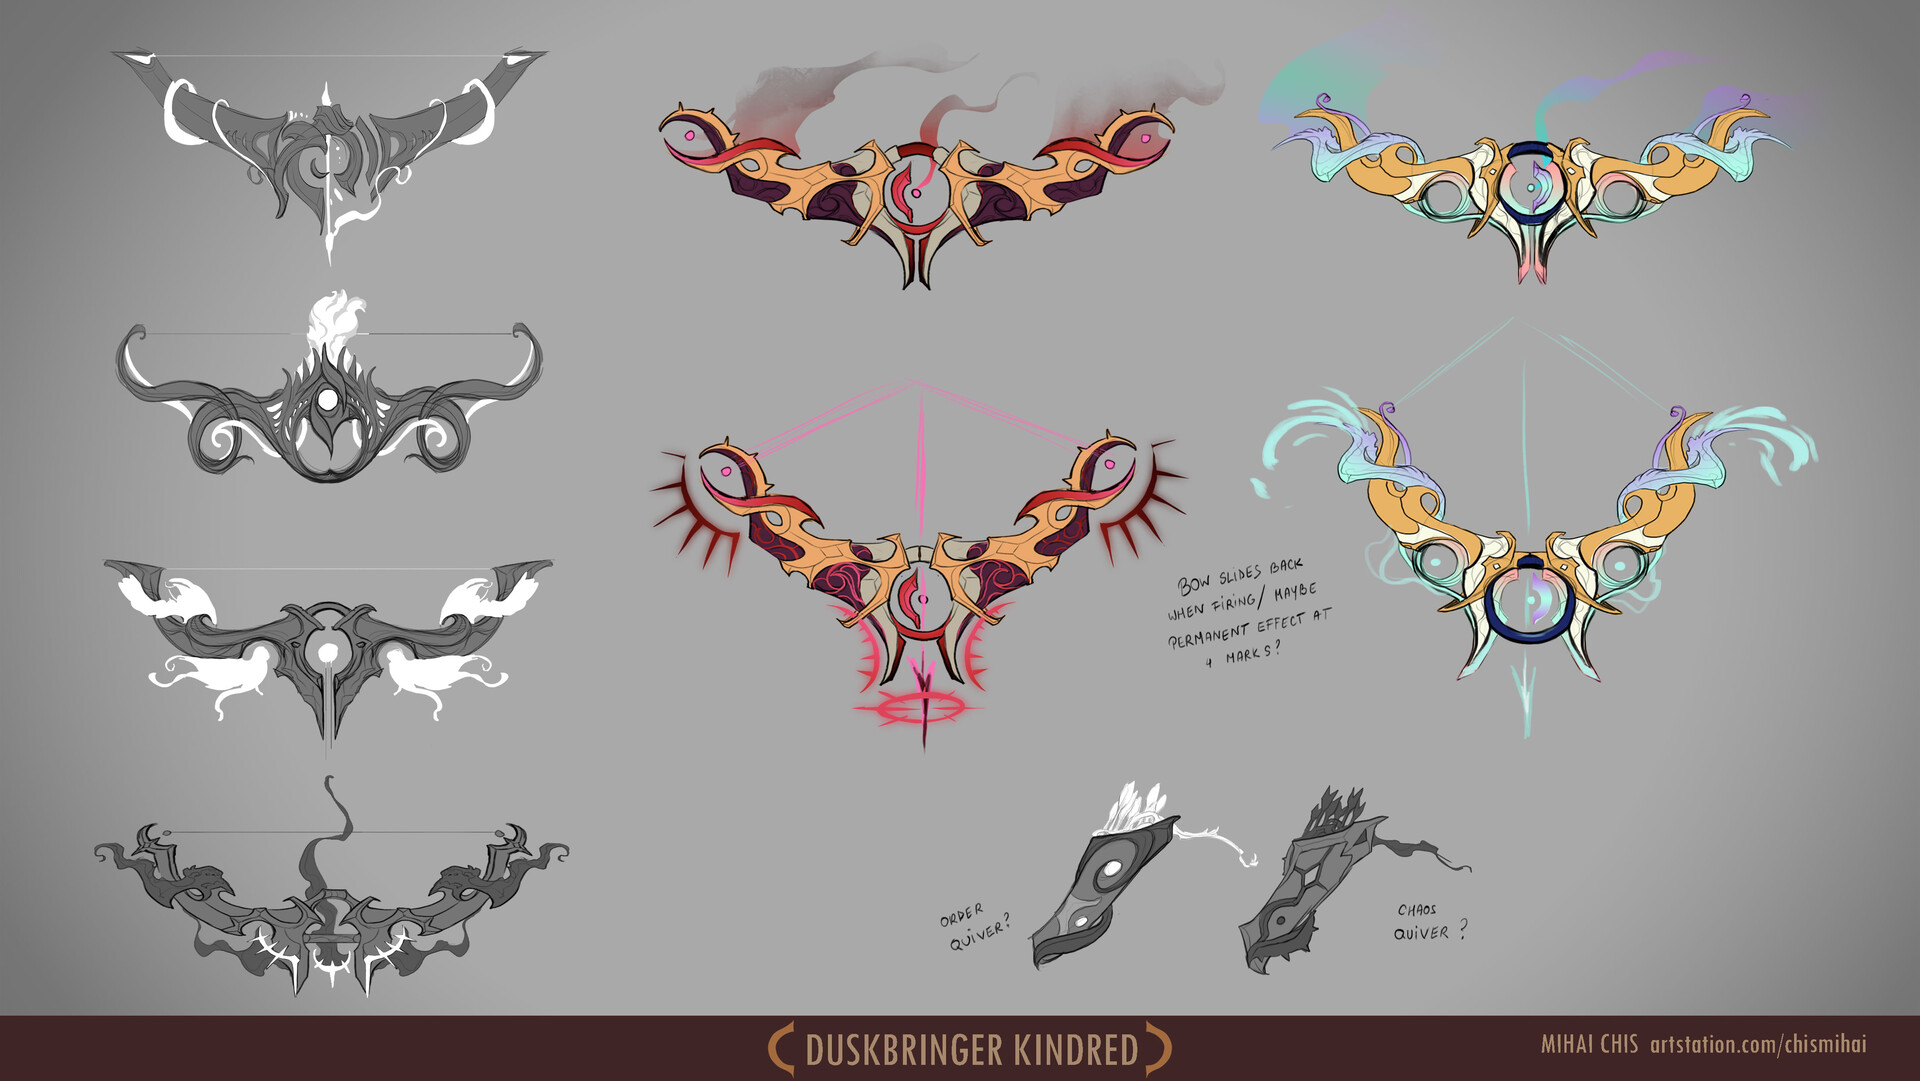 Different bow designs for chaos and order lamb.